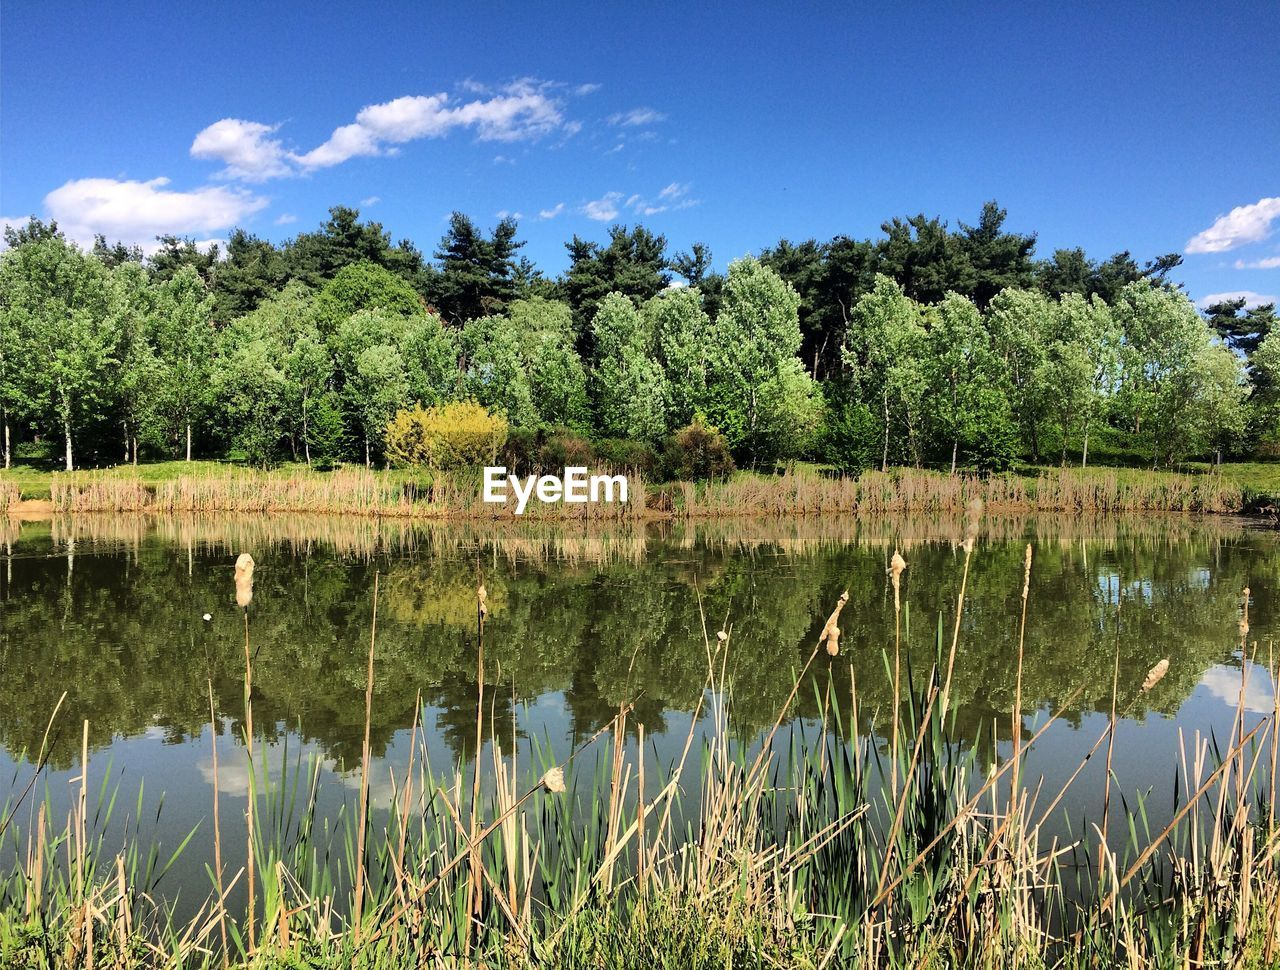 SCENIC VIEW OF LAKE WITH TREES REFLECTION AGAINST SKY